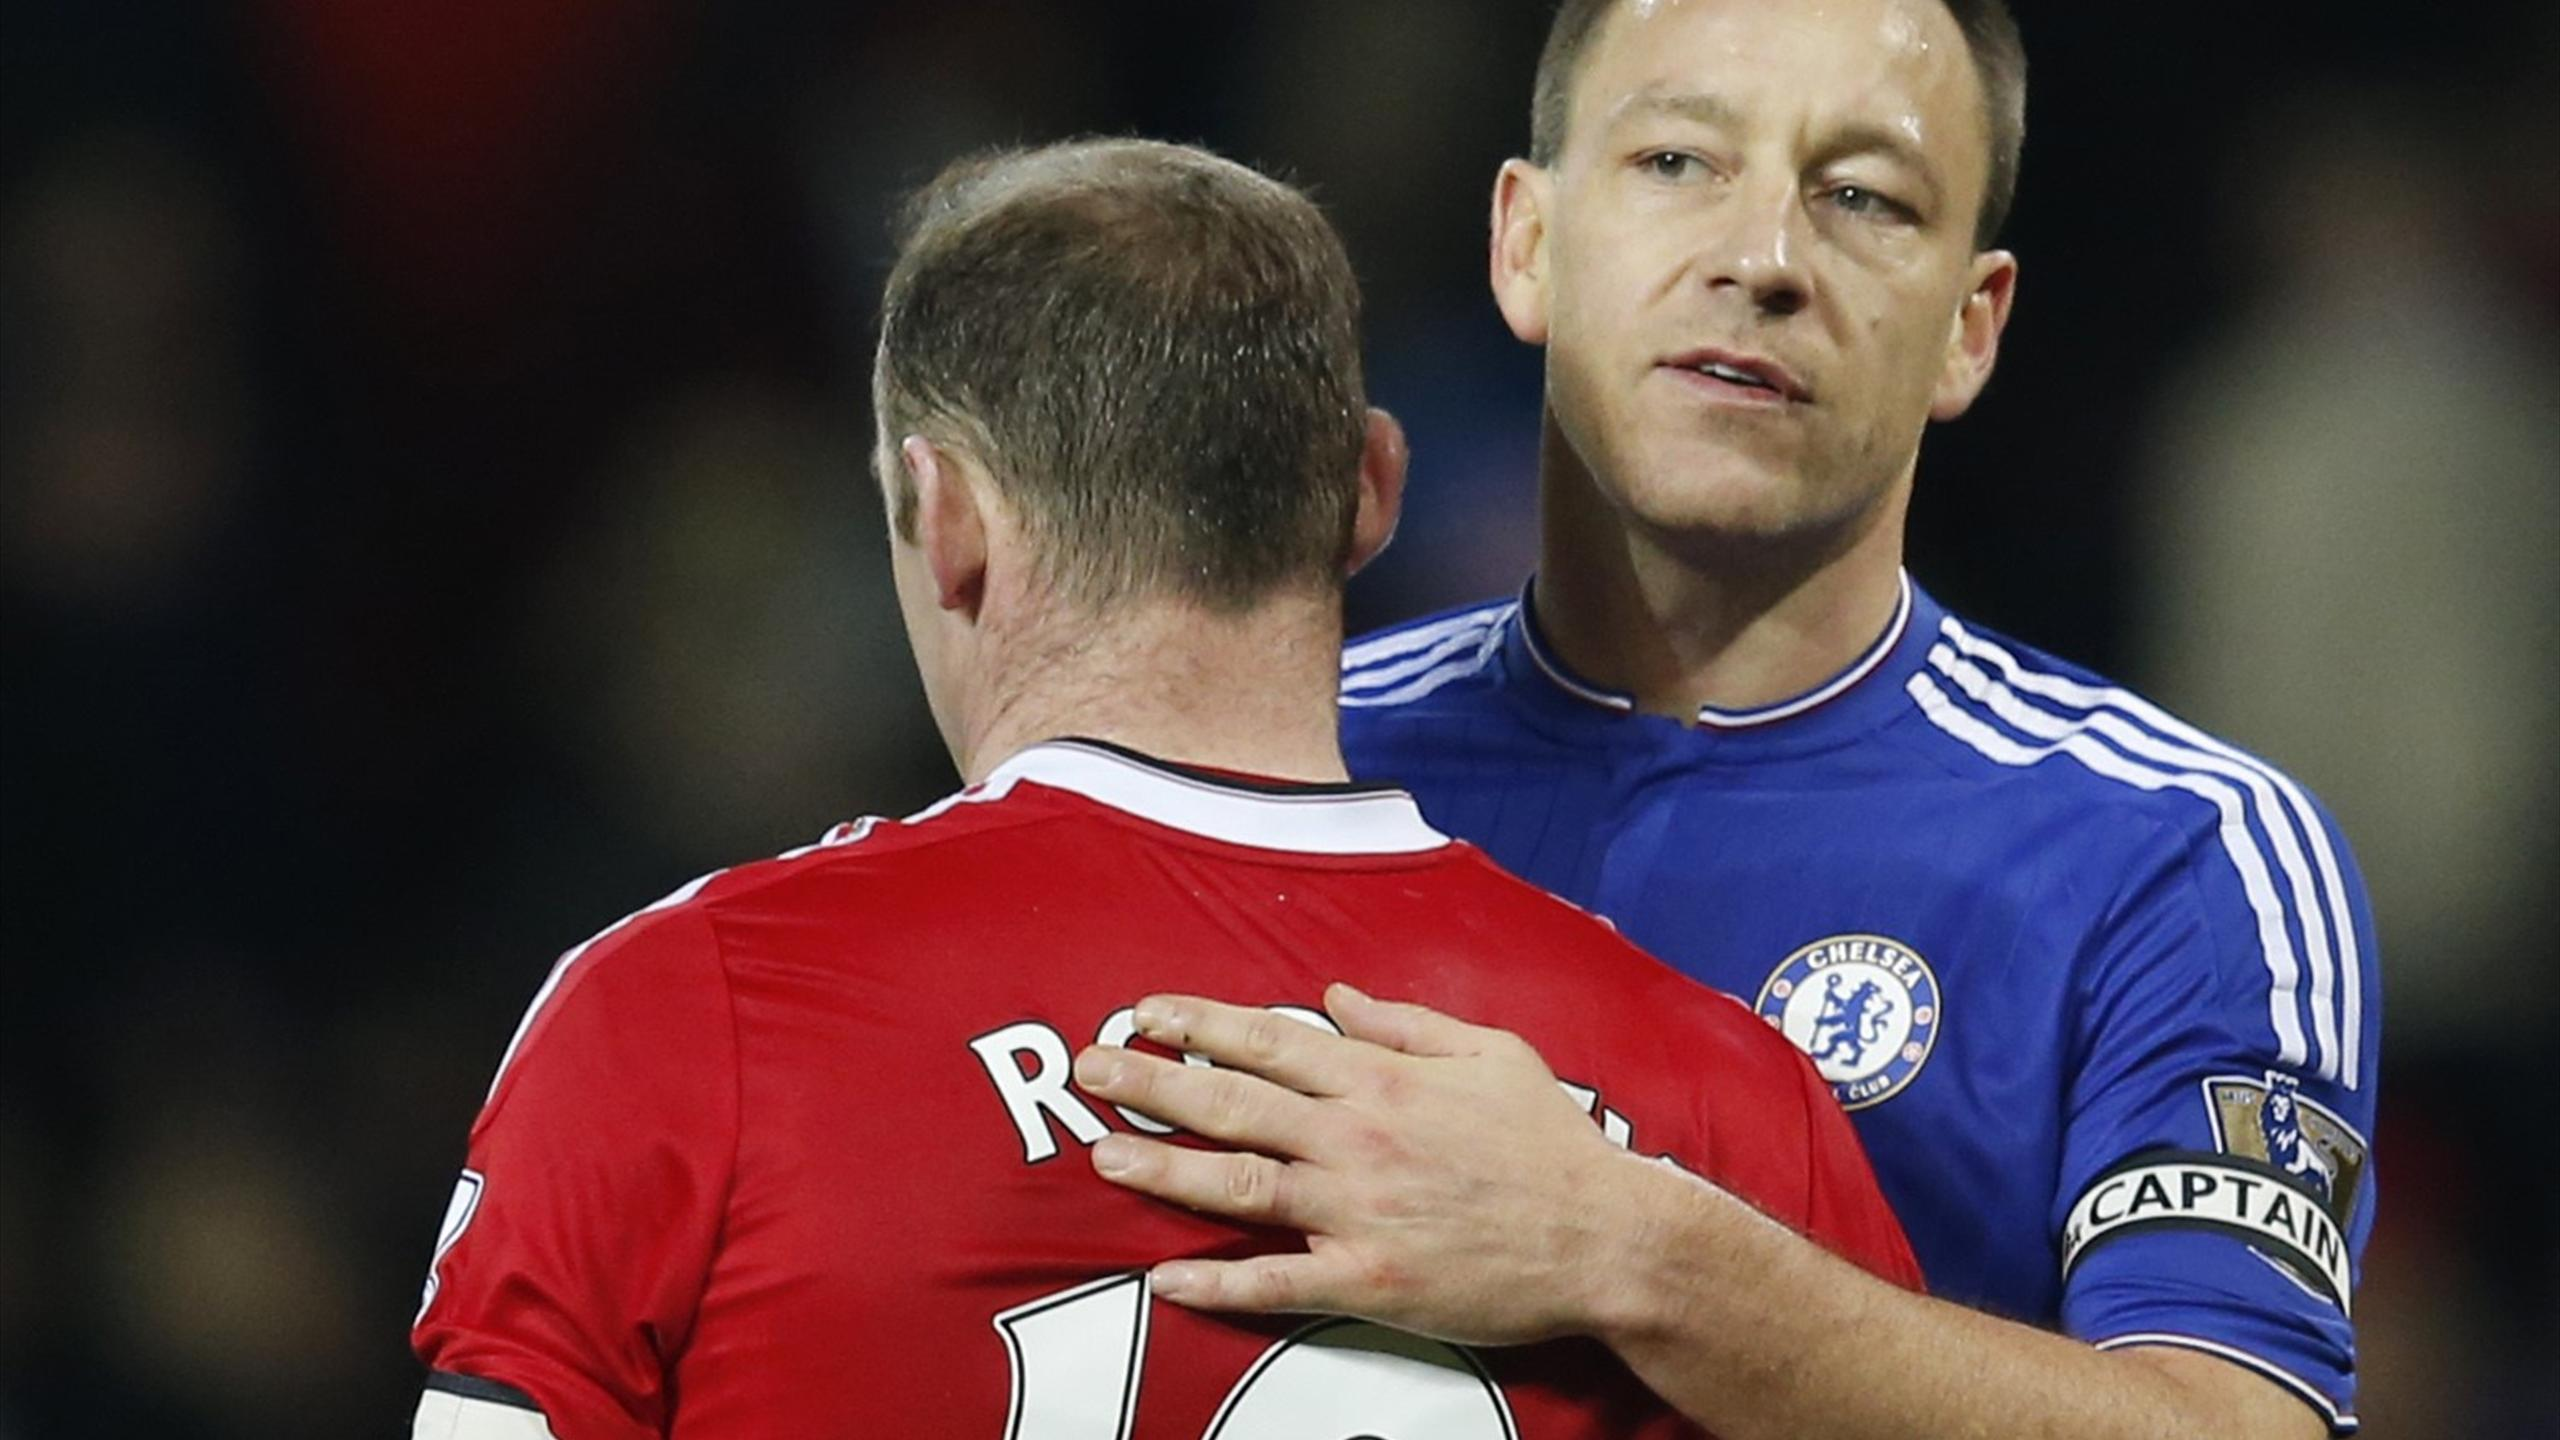 Manchester United's Wayne Rooney with Chelsea's John Terry at full time